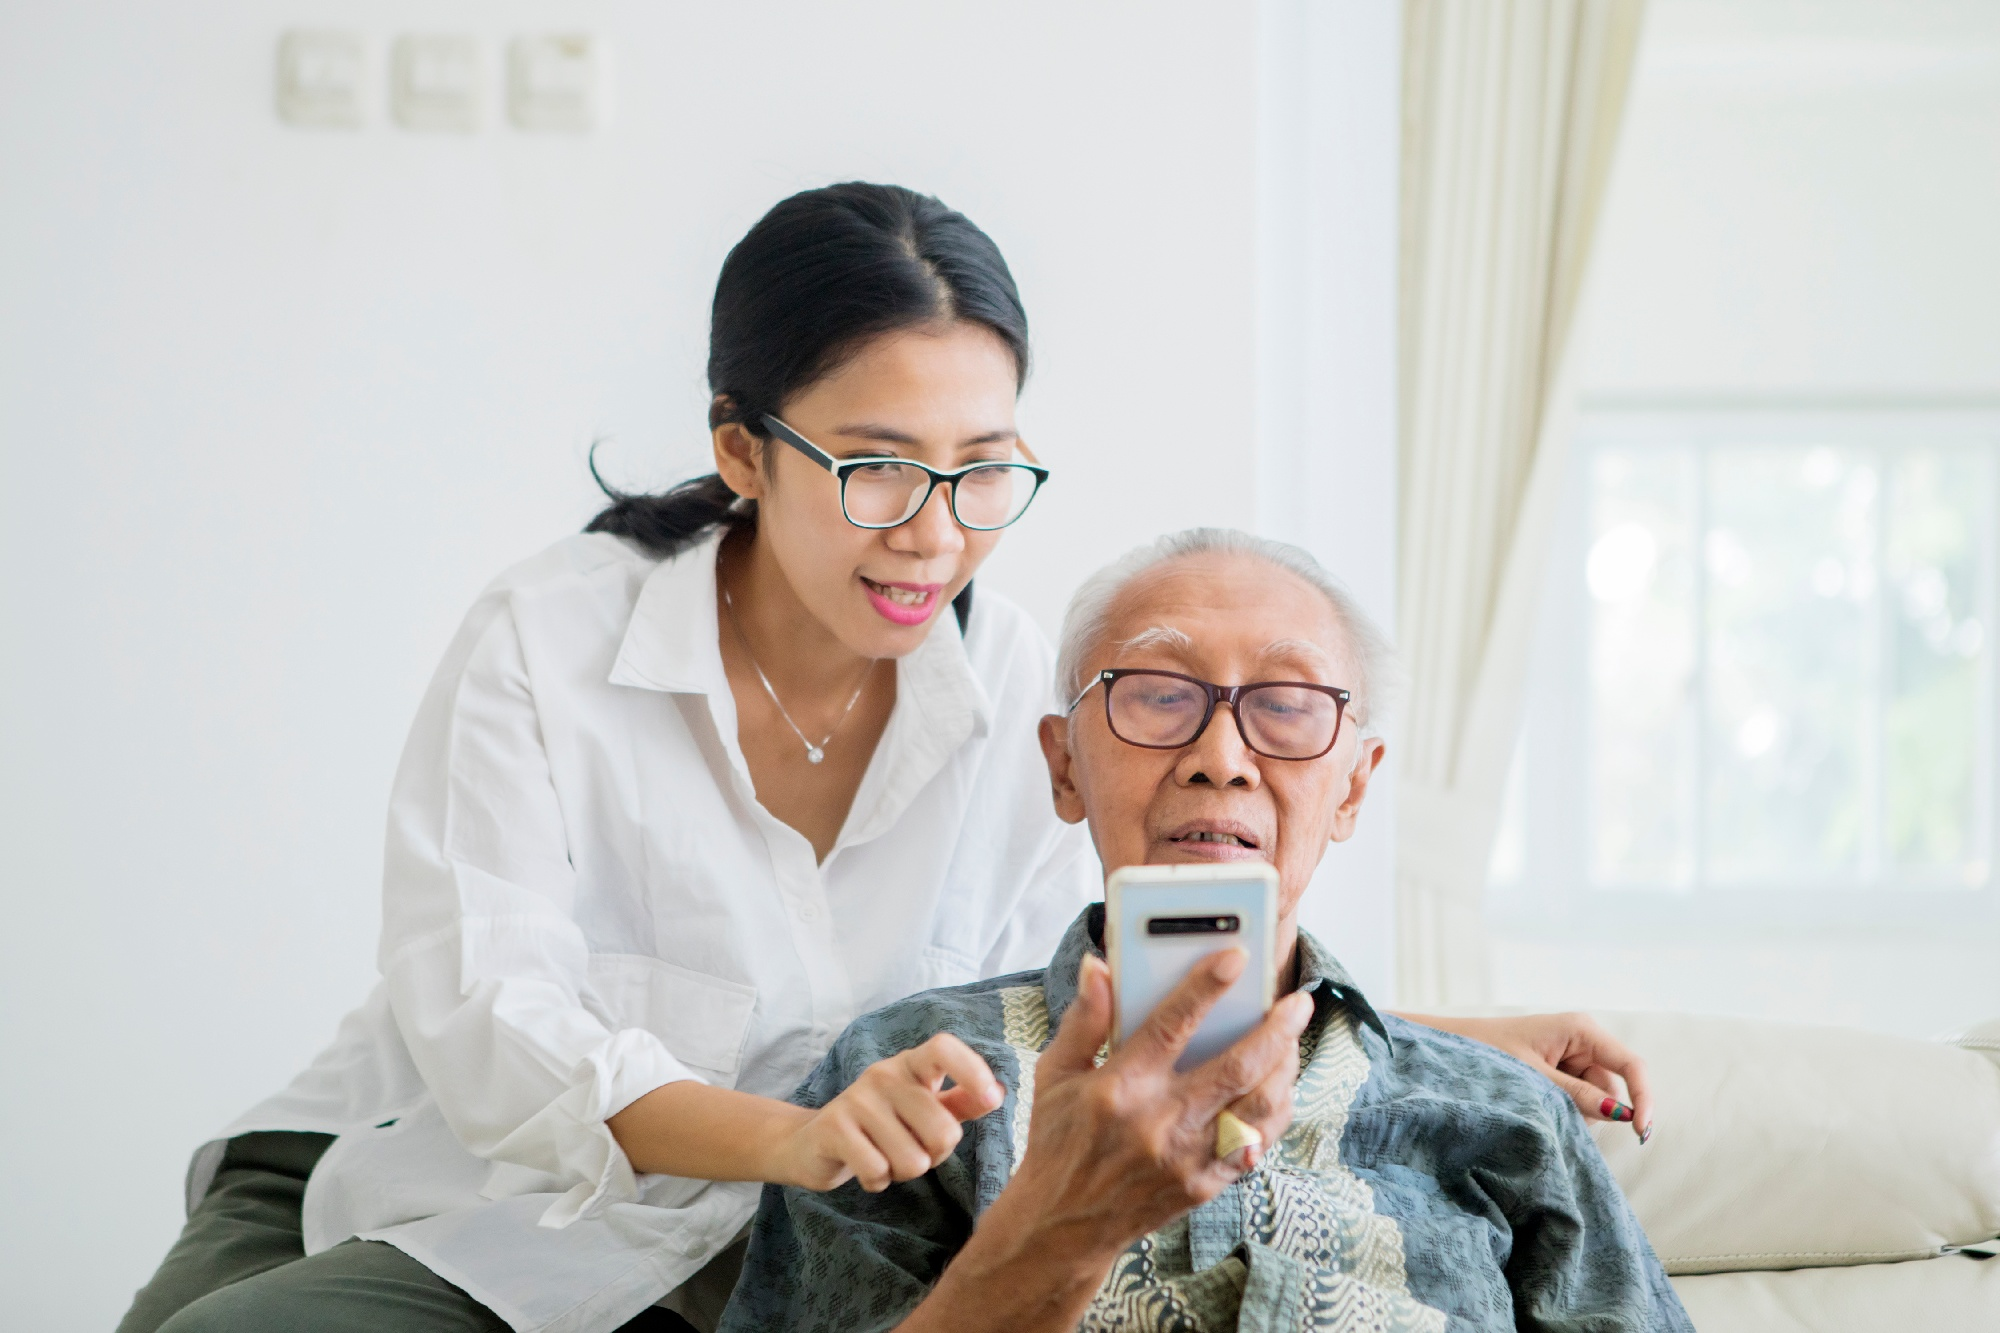 daughter helping father use smartphone